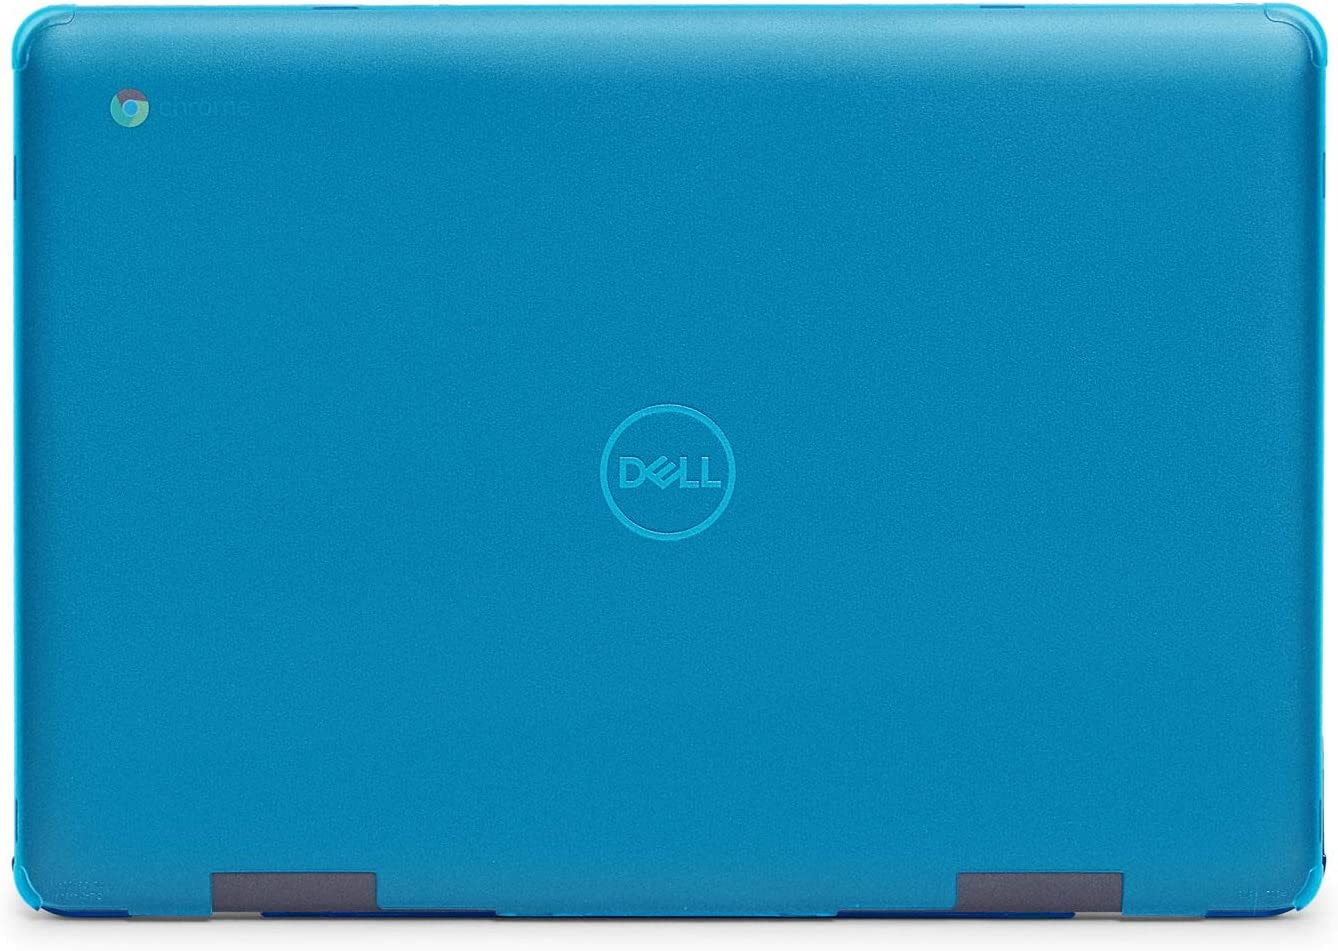 mCover Hard Shell Case for 2020 14-inch Dell Latitude 5400 Chromebook Enterprise Laptop Computer (NOT Compatible with Dell C11 3181/3100/7486 2in1, 3400/3120/3180/3189/5190 Series) Dell LC5400 Aqua